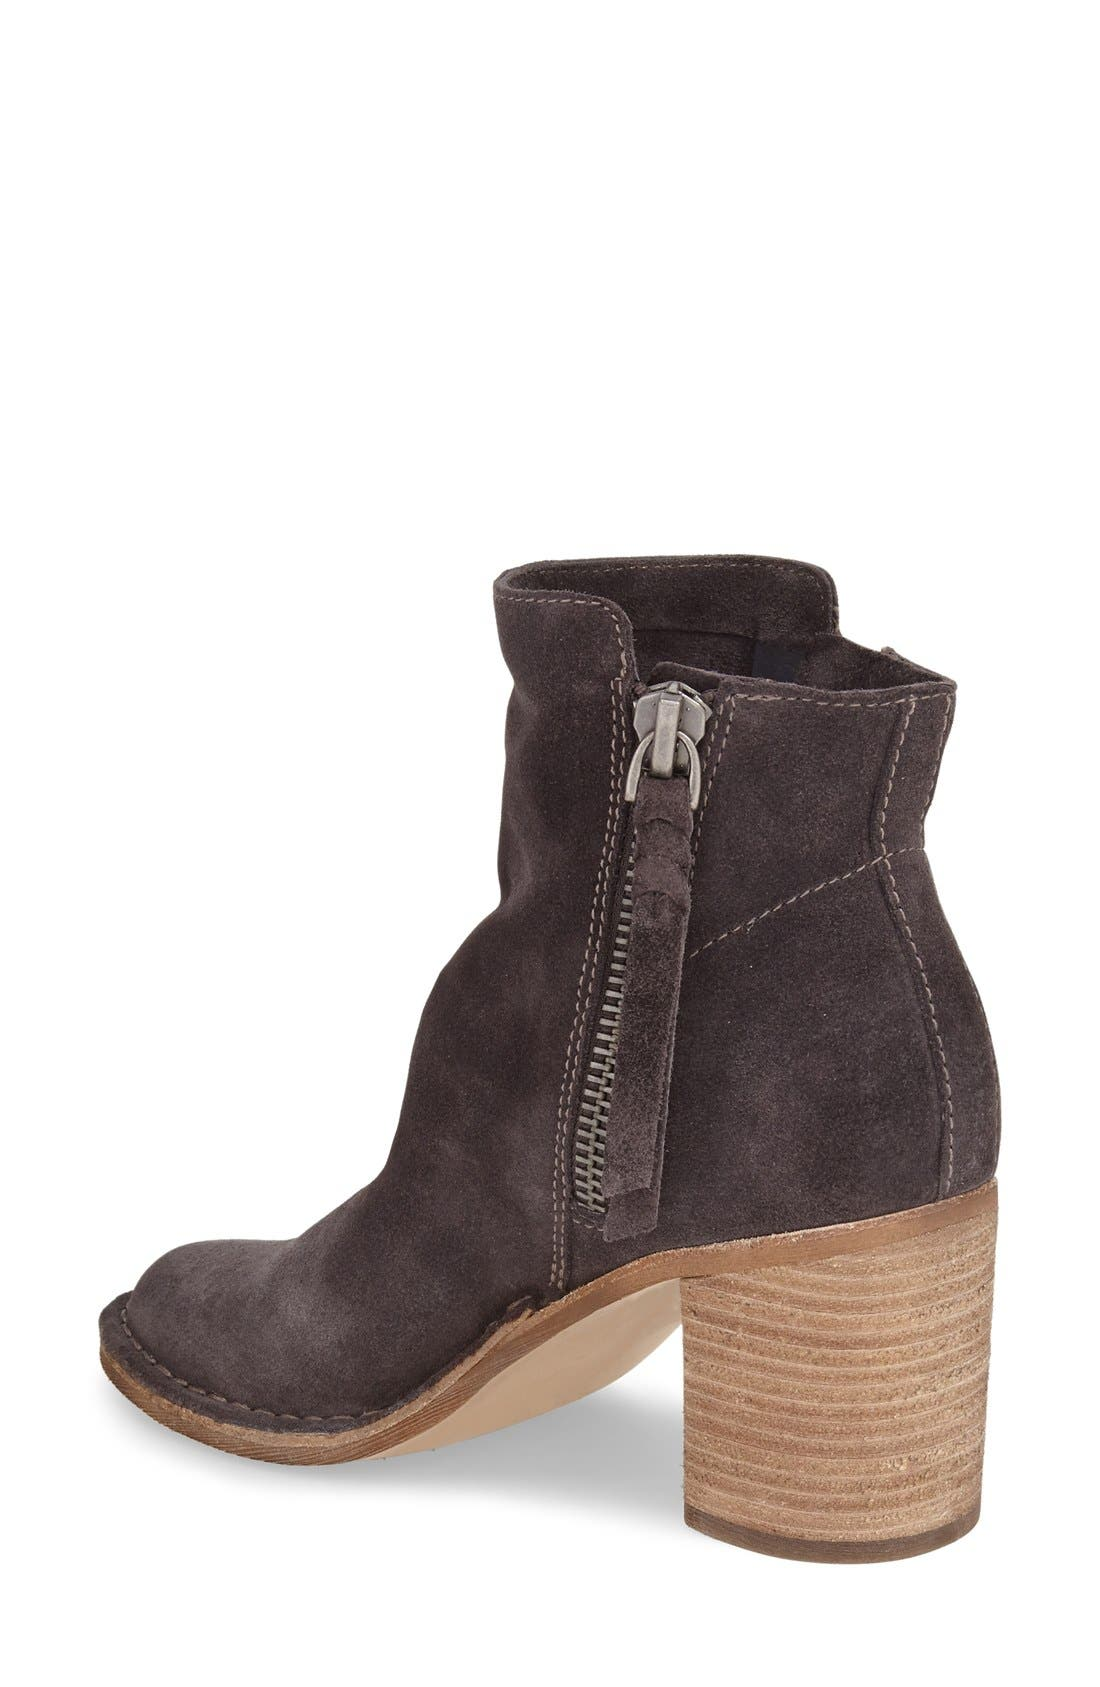 'Lana' Block Heel Bootie,                             Alternate thumbnail 2, color,                             Anthracite Suede